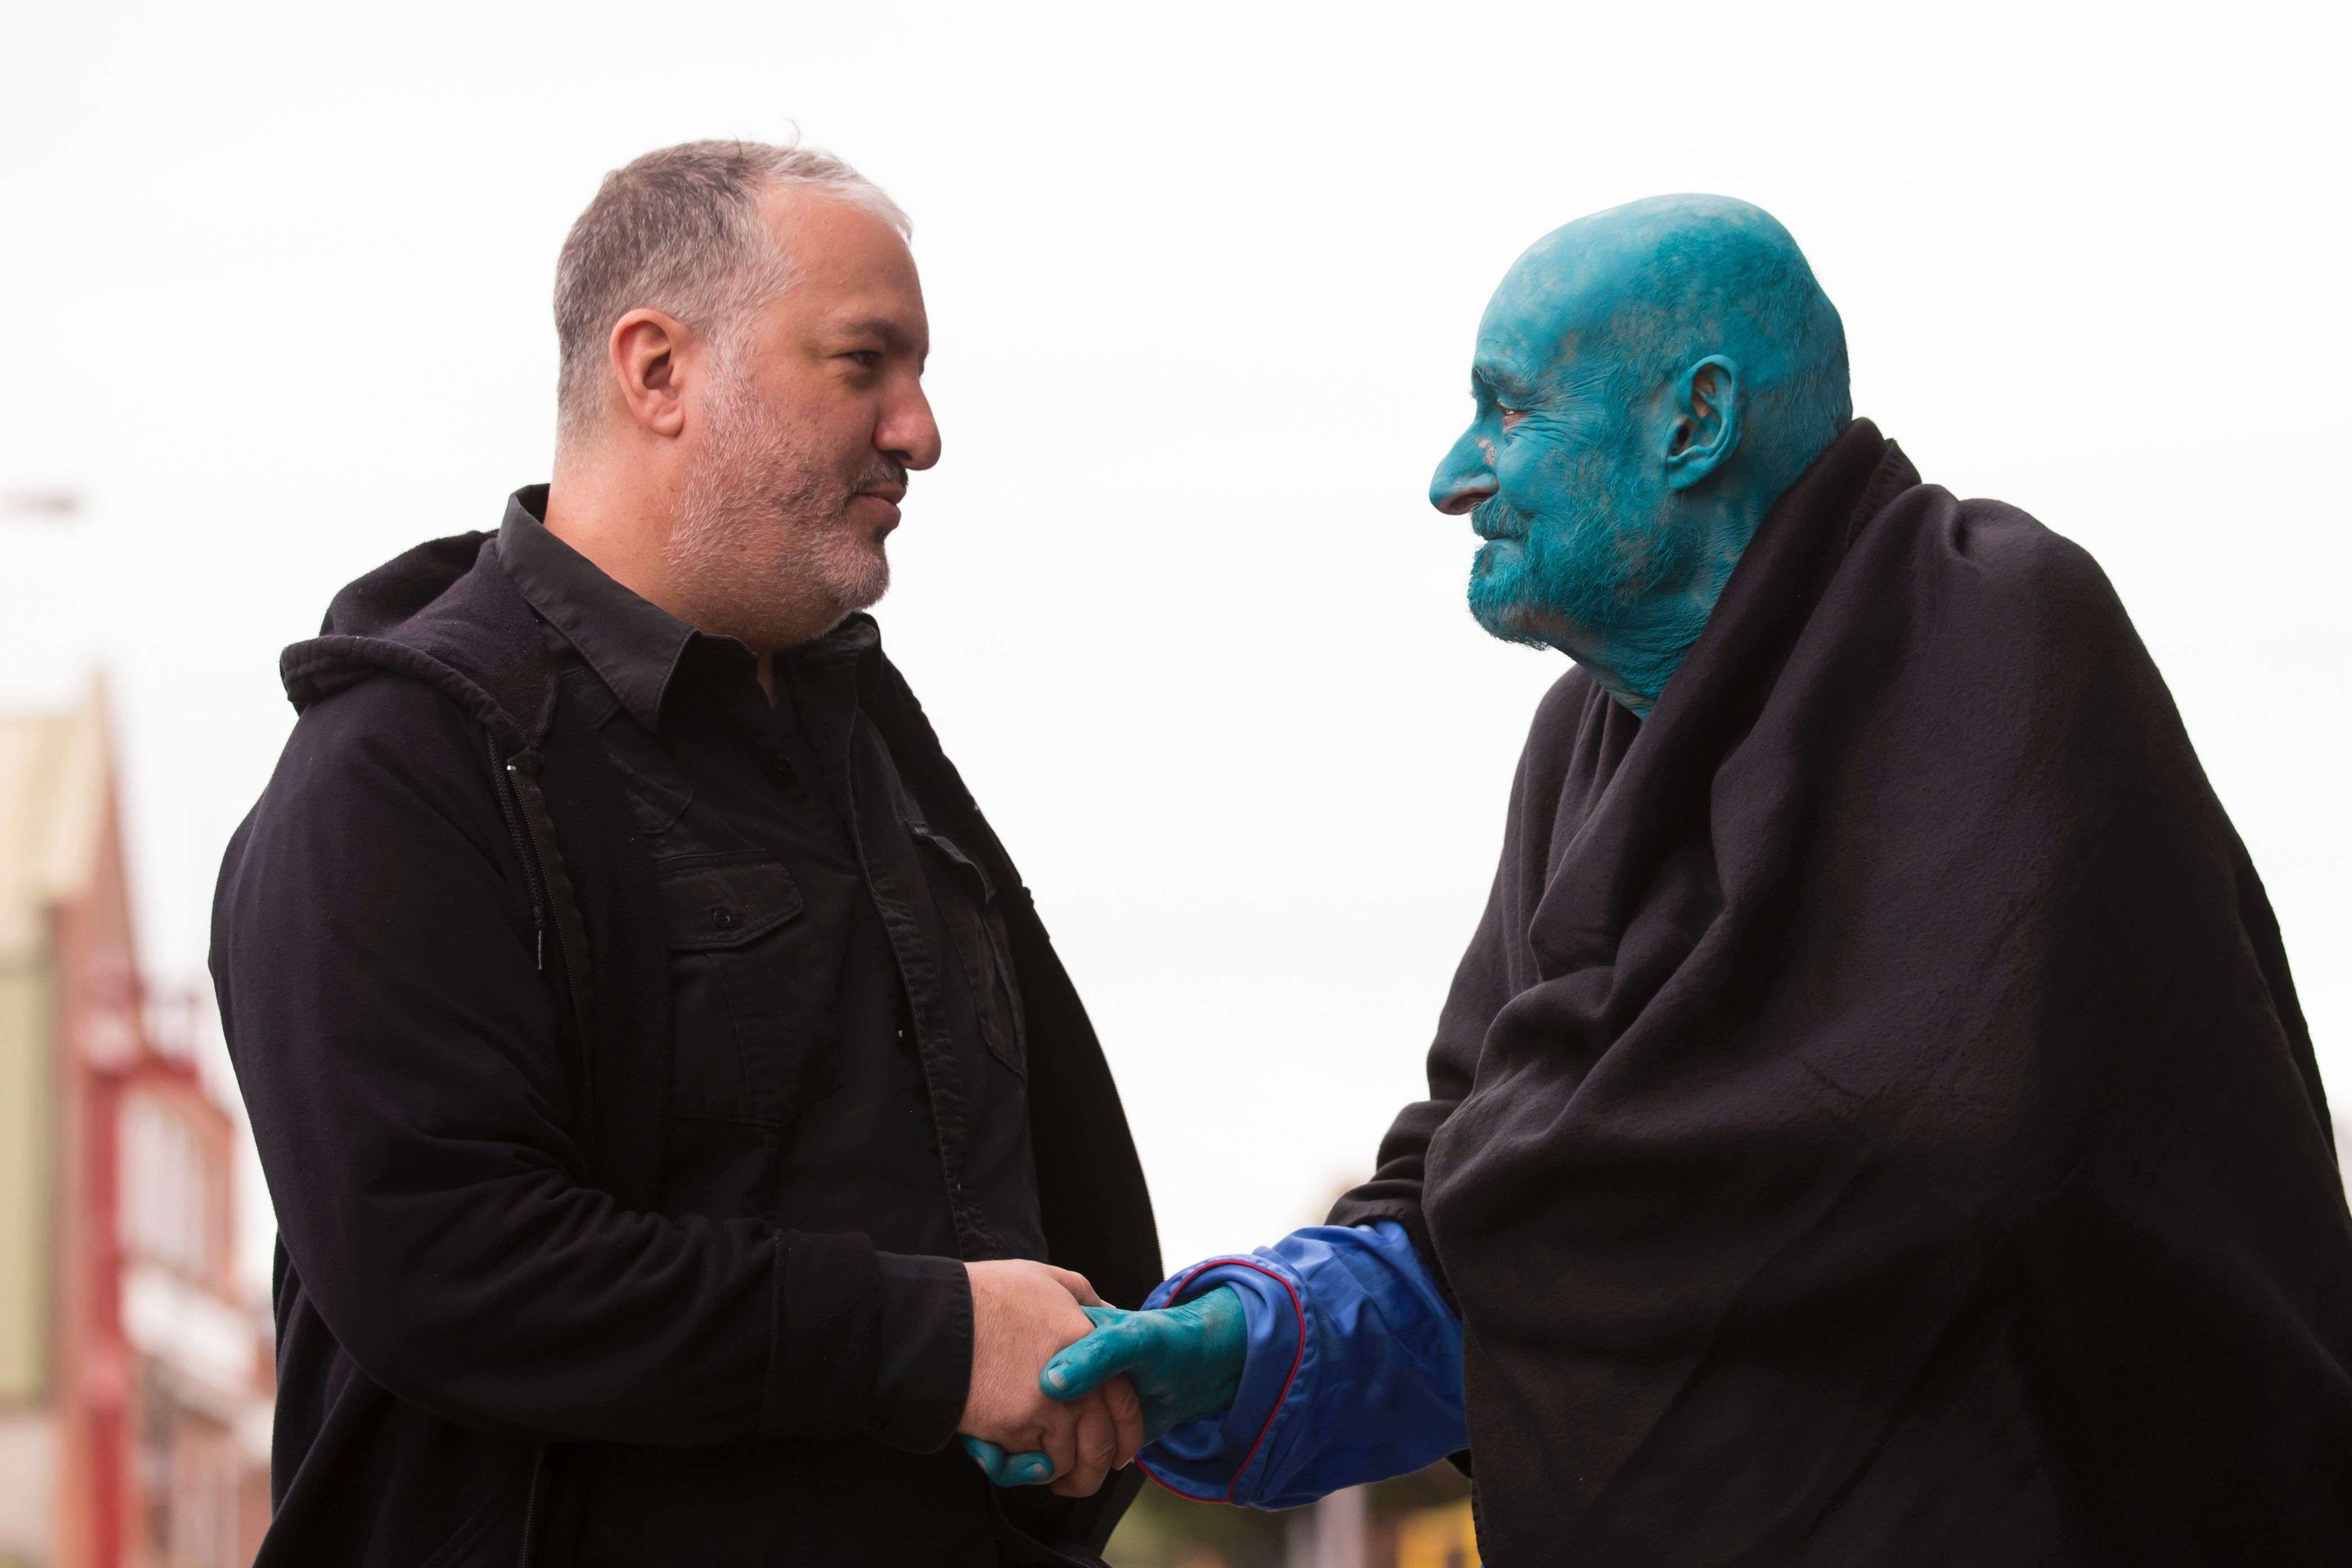 """US artist Spencer Tunick (L), shakes hands with 80 year old Belgian, Arizona-based art collector Stephane Janssen who has participated in 20 of Turnick's installations after around 3000 naked volunteers, painted in blue to reflect the colours found in Marine paintings in Hull's Ferens Art Gallery, participate in US artist, Spencer Tunick's """"Sea of Hull"""" installation on the Scale Lane swing bridge in Kingston upon Hull on July 9, 2016. Over a period of 20 years, the New York based artist has created over 90 art installations in some of the most culturally significant places and landmarks around the world including the Sydney Opera House, Place des Arts in Montreal, Mexico City, Ernest Happel Stadium in Vienna and Munich in Germany. / AFP PHOTO / JON SUPER / RESTRICTED TO EDITORIAL USE - MANDATORY MENTION OF THE ARTIST UPON PUBLICATION - TO ILLUSTRATE THE EVENT AS SPECIFIED IN THE CAPTION - NO CLOSE UP SHOTS TO BE REPRODUCED OF INDIVIDUALS INVOLVED IN THE INSTALLATION"""